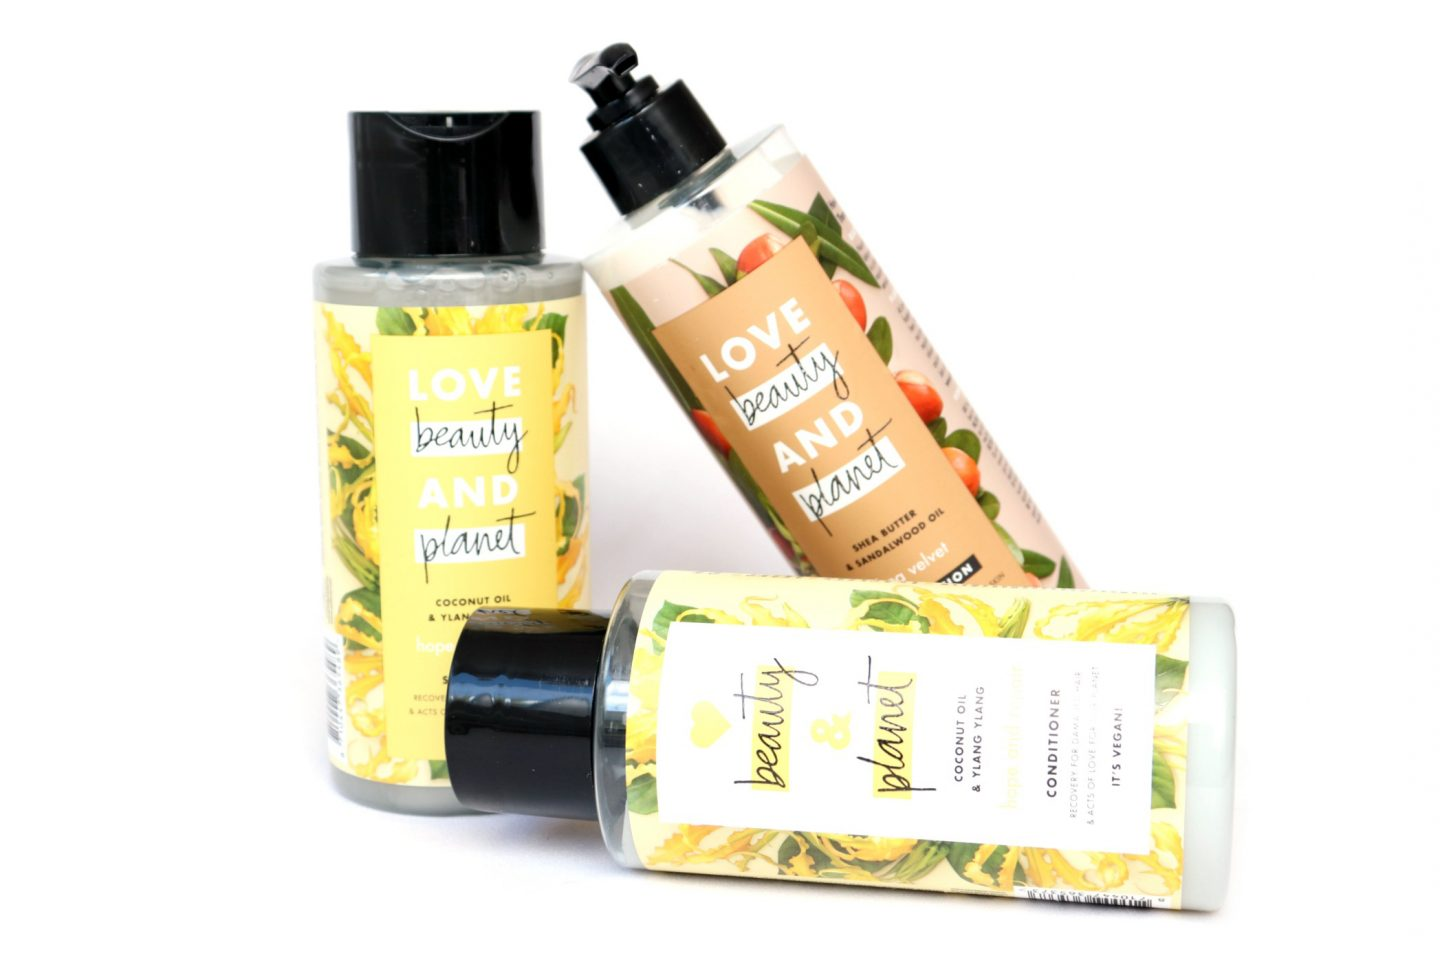 Love Beauty and Planet – Natural Beauty Products Review